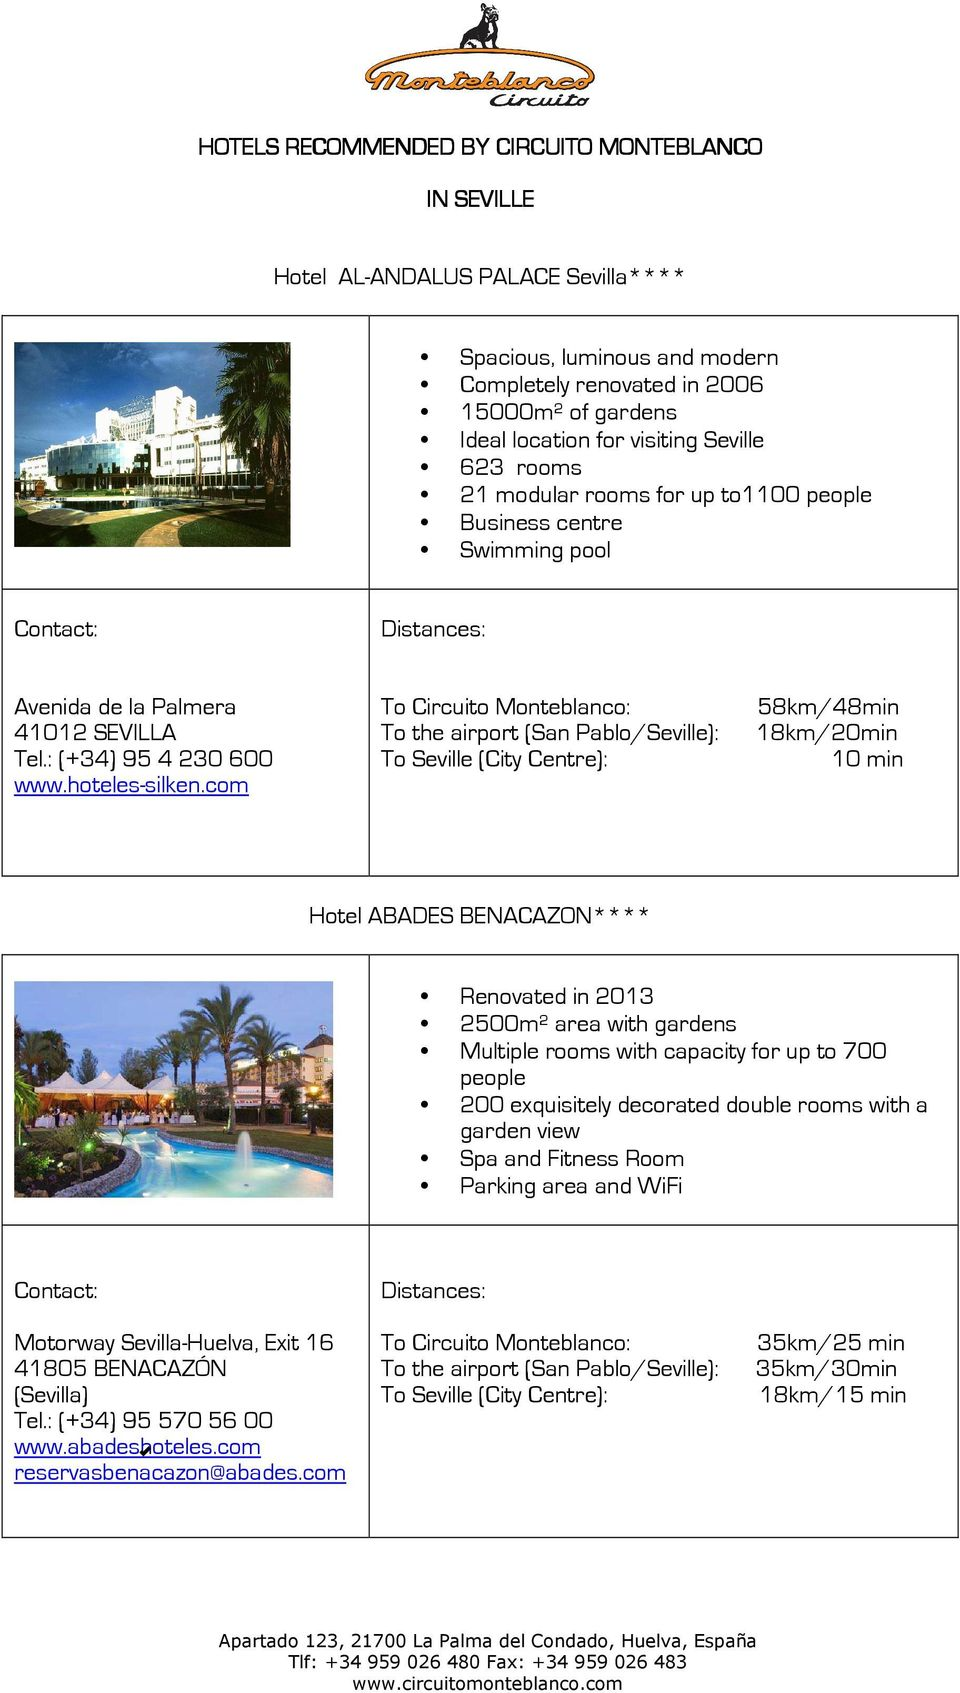 Circuito Monteblanco : Hotels recommended by circuito monteblanco in seville. hotel al